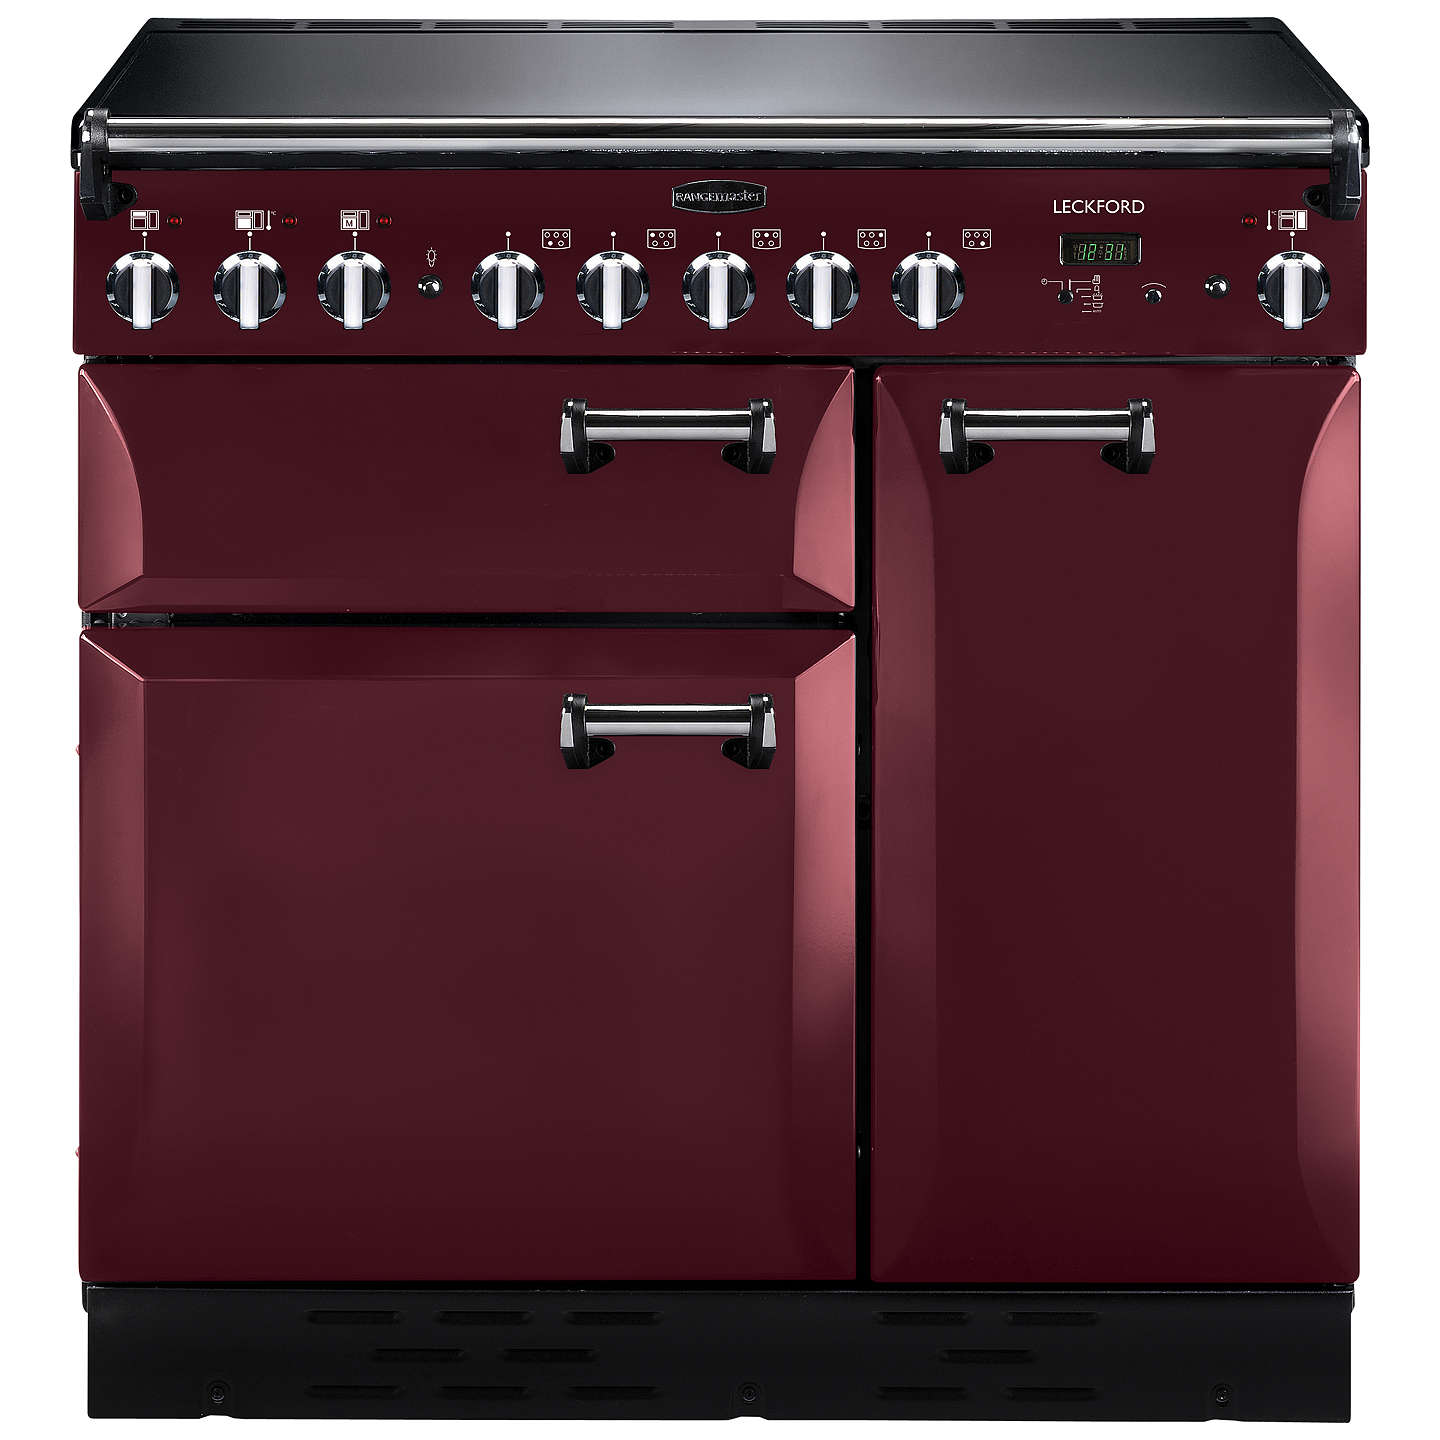 BuyRangemaster Leckford LCK90EICY/C Electric Induction Range Cooker, Cranberry/Chrome Online at johnlewis.com